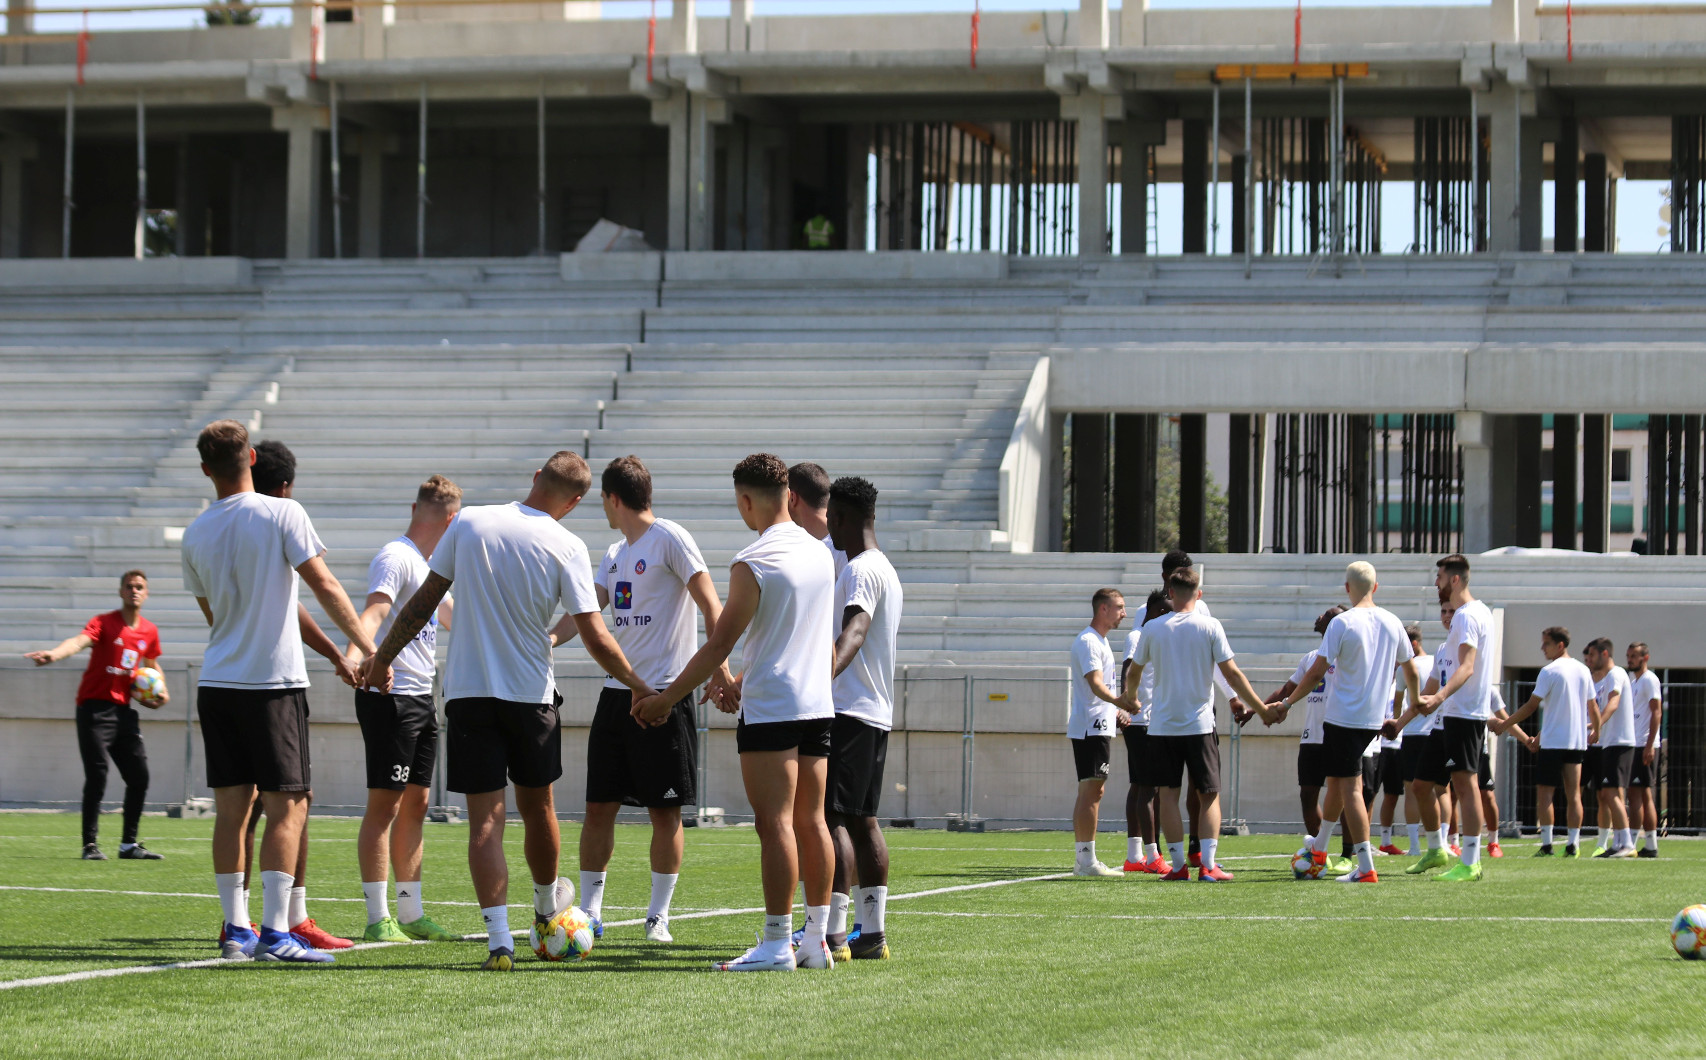 A-team | We have started preparations for the new season